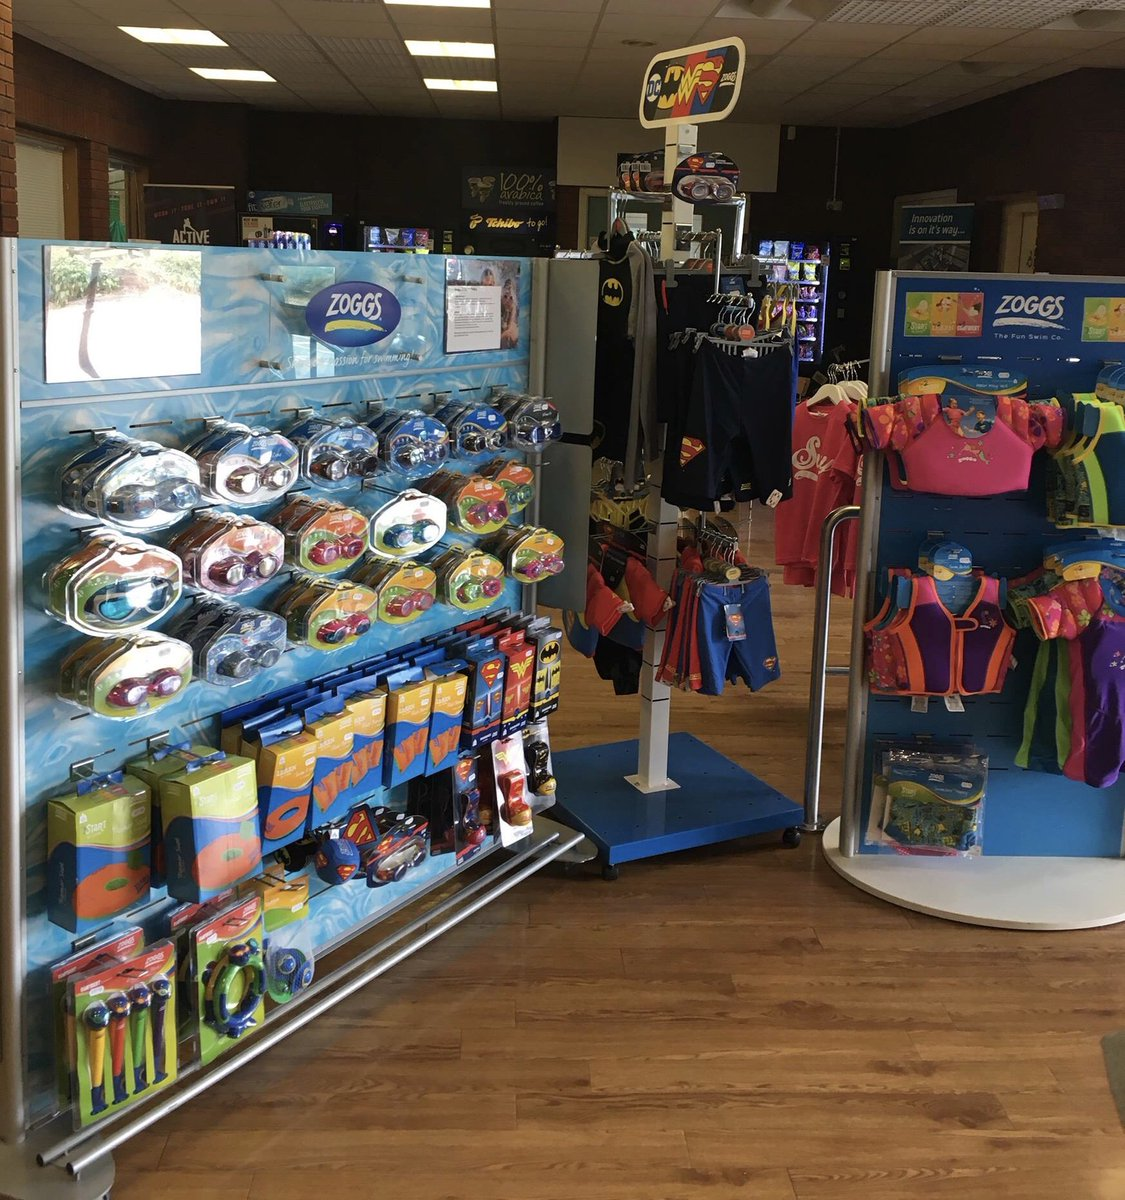 eeb877b6b From swimwear to buoyancy aids, we've got it stocked! Pop along and have a  look for yourself! Family Members receive 10% off all Zoggs purchases.